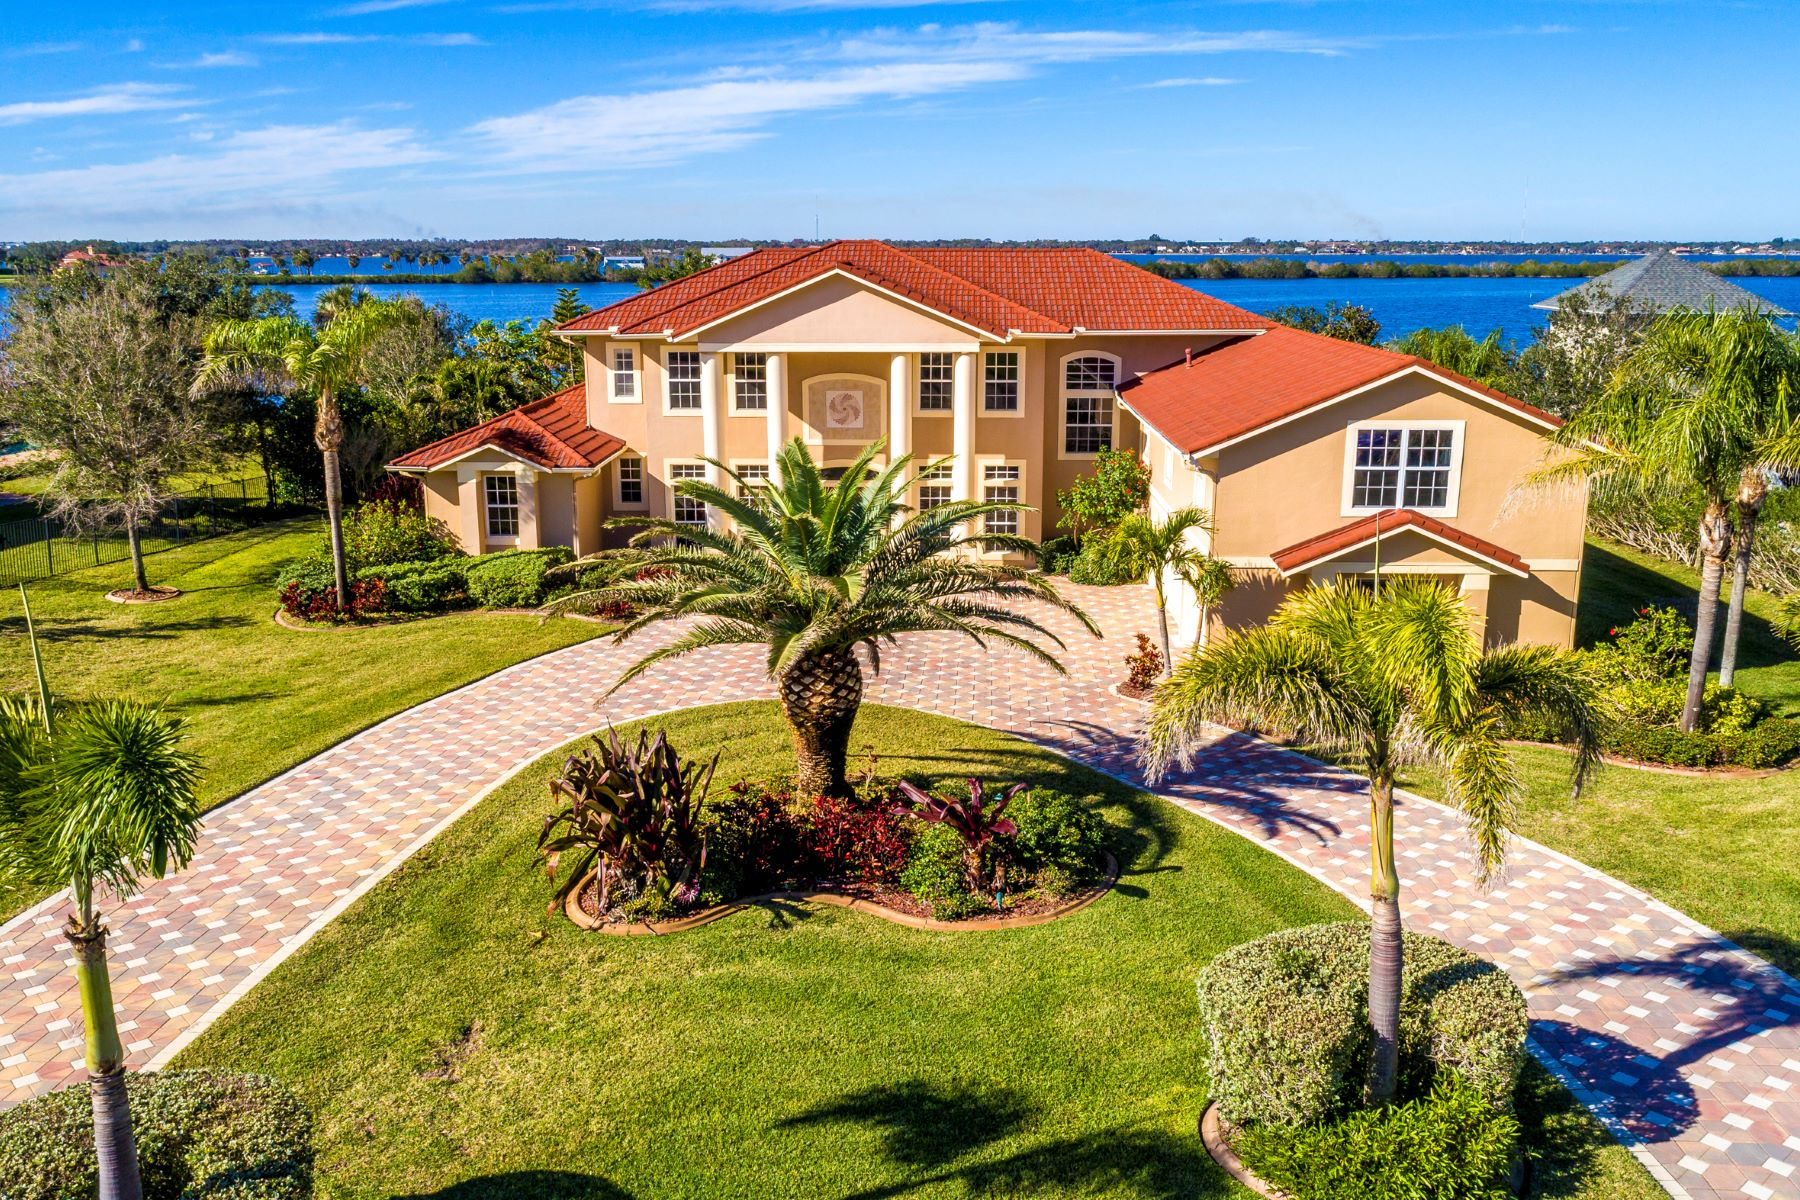 Property para Venda às Spectacular Estate Home Overlooking Honeymoon Lake and the Indian River 4790 Honeyridge Lane Merritt Island, Florida 32952 Estados Unidos